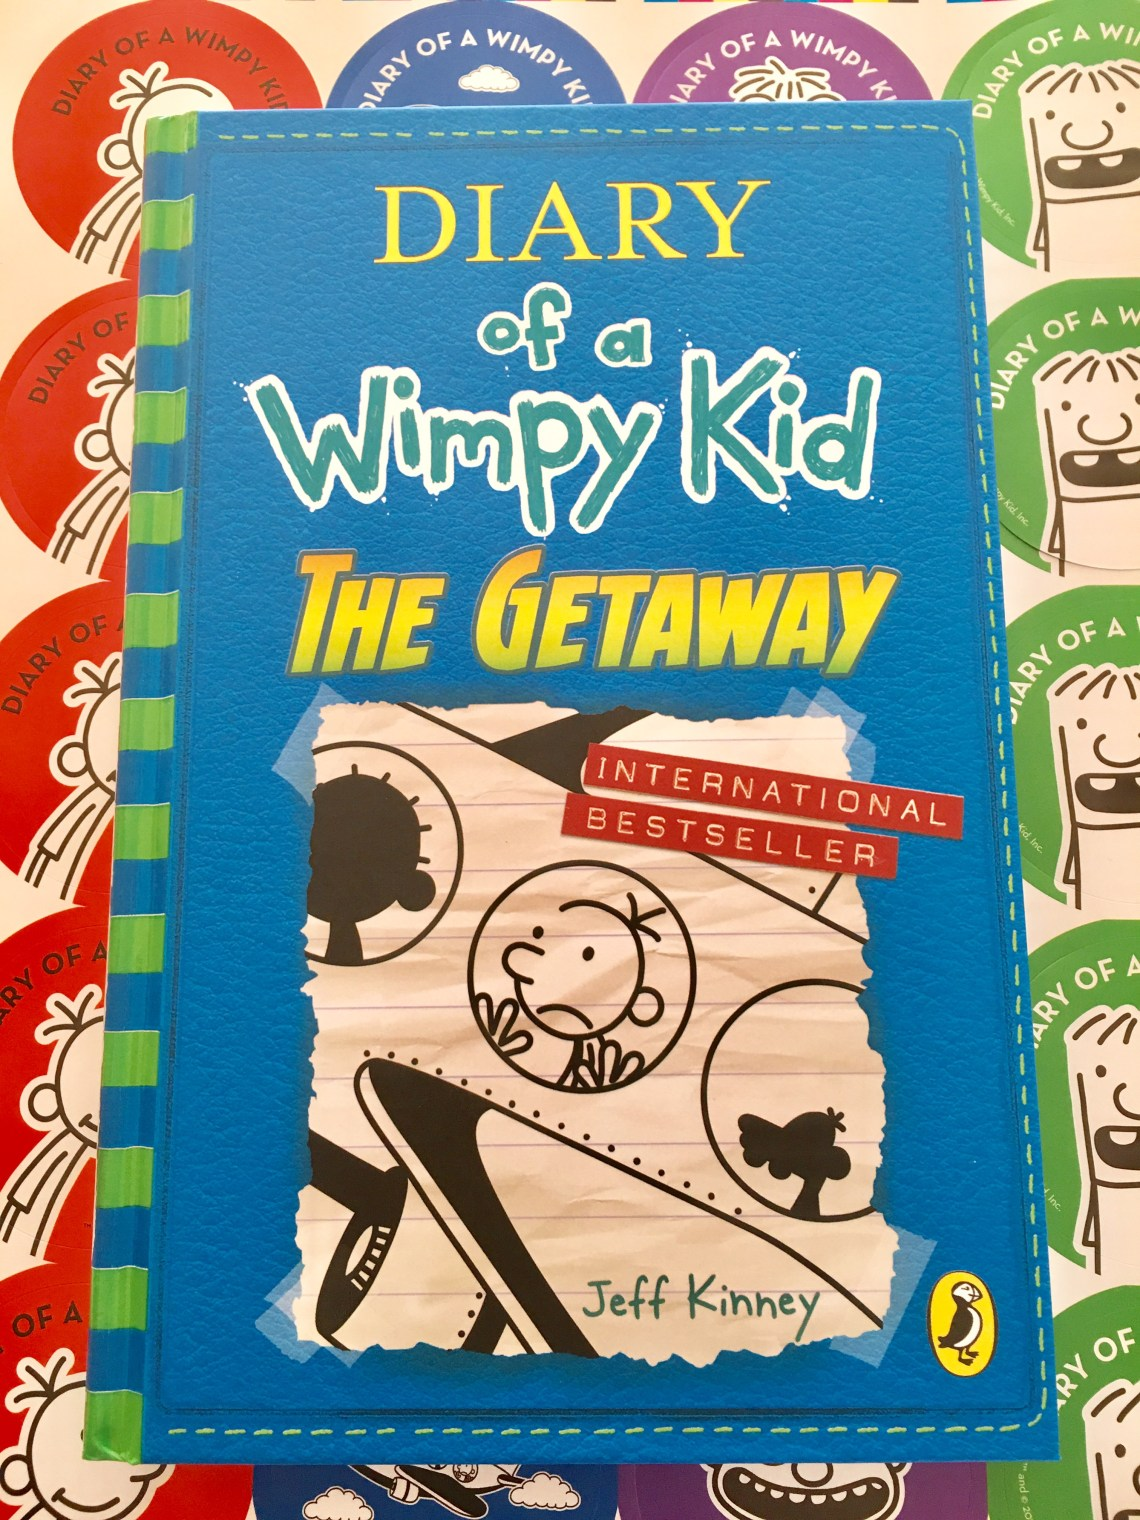 Diary Of A Wimpy Kid - interview With Jeff Kinney